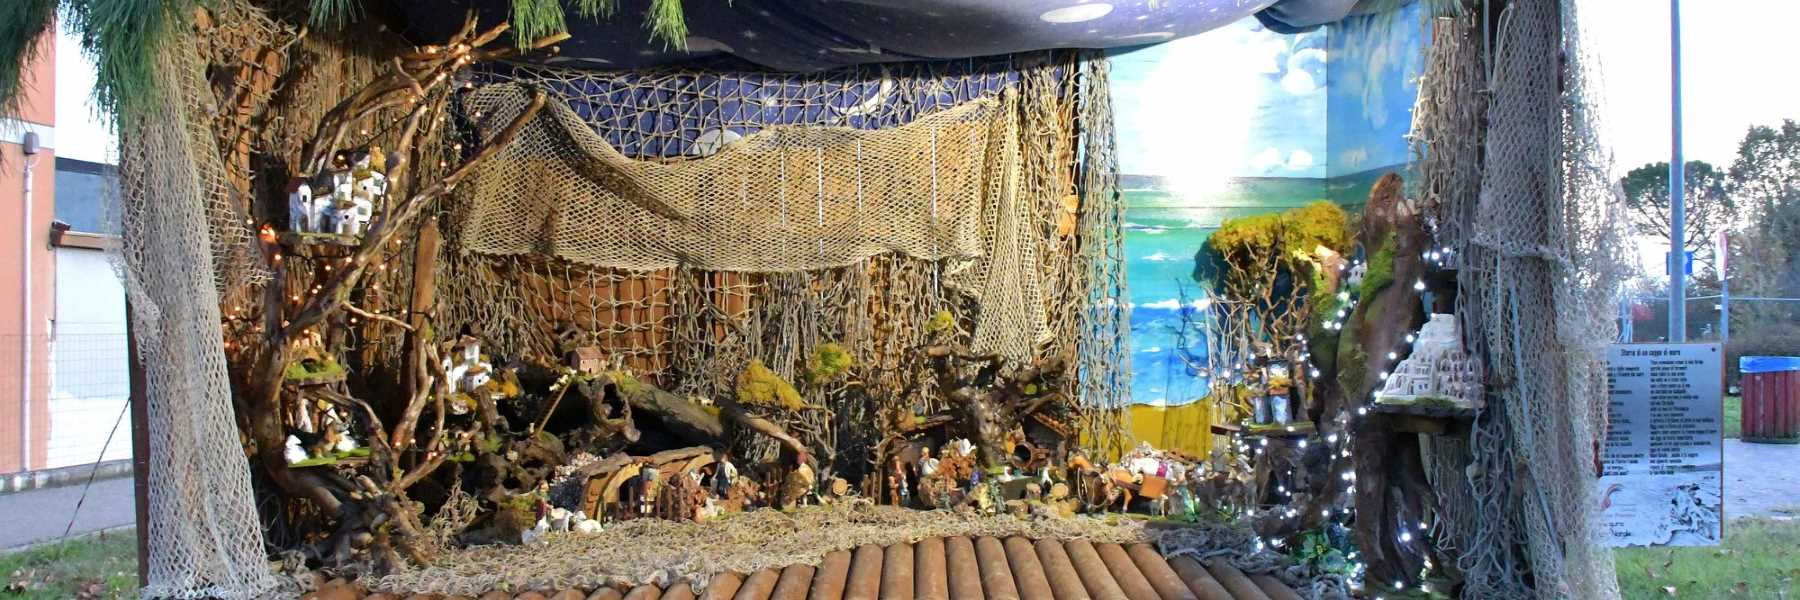 Nativity scene in Pisignano